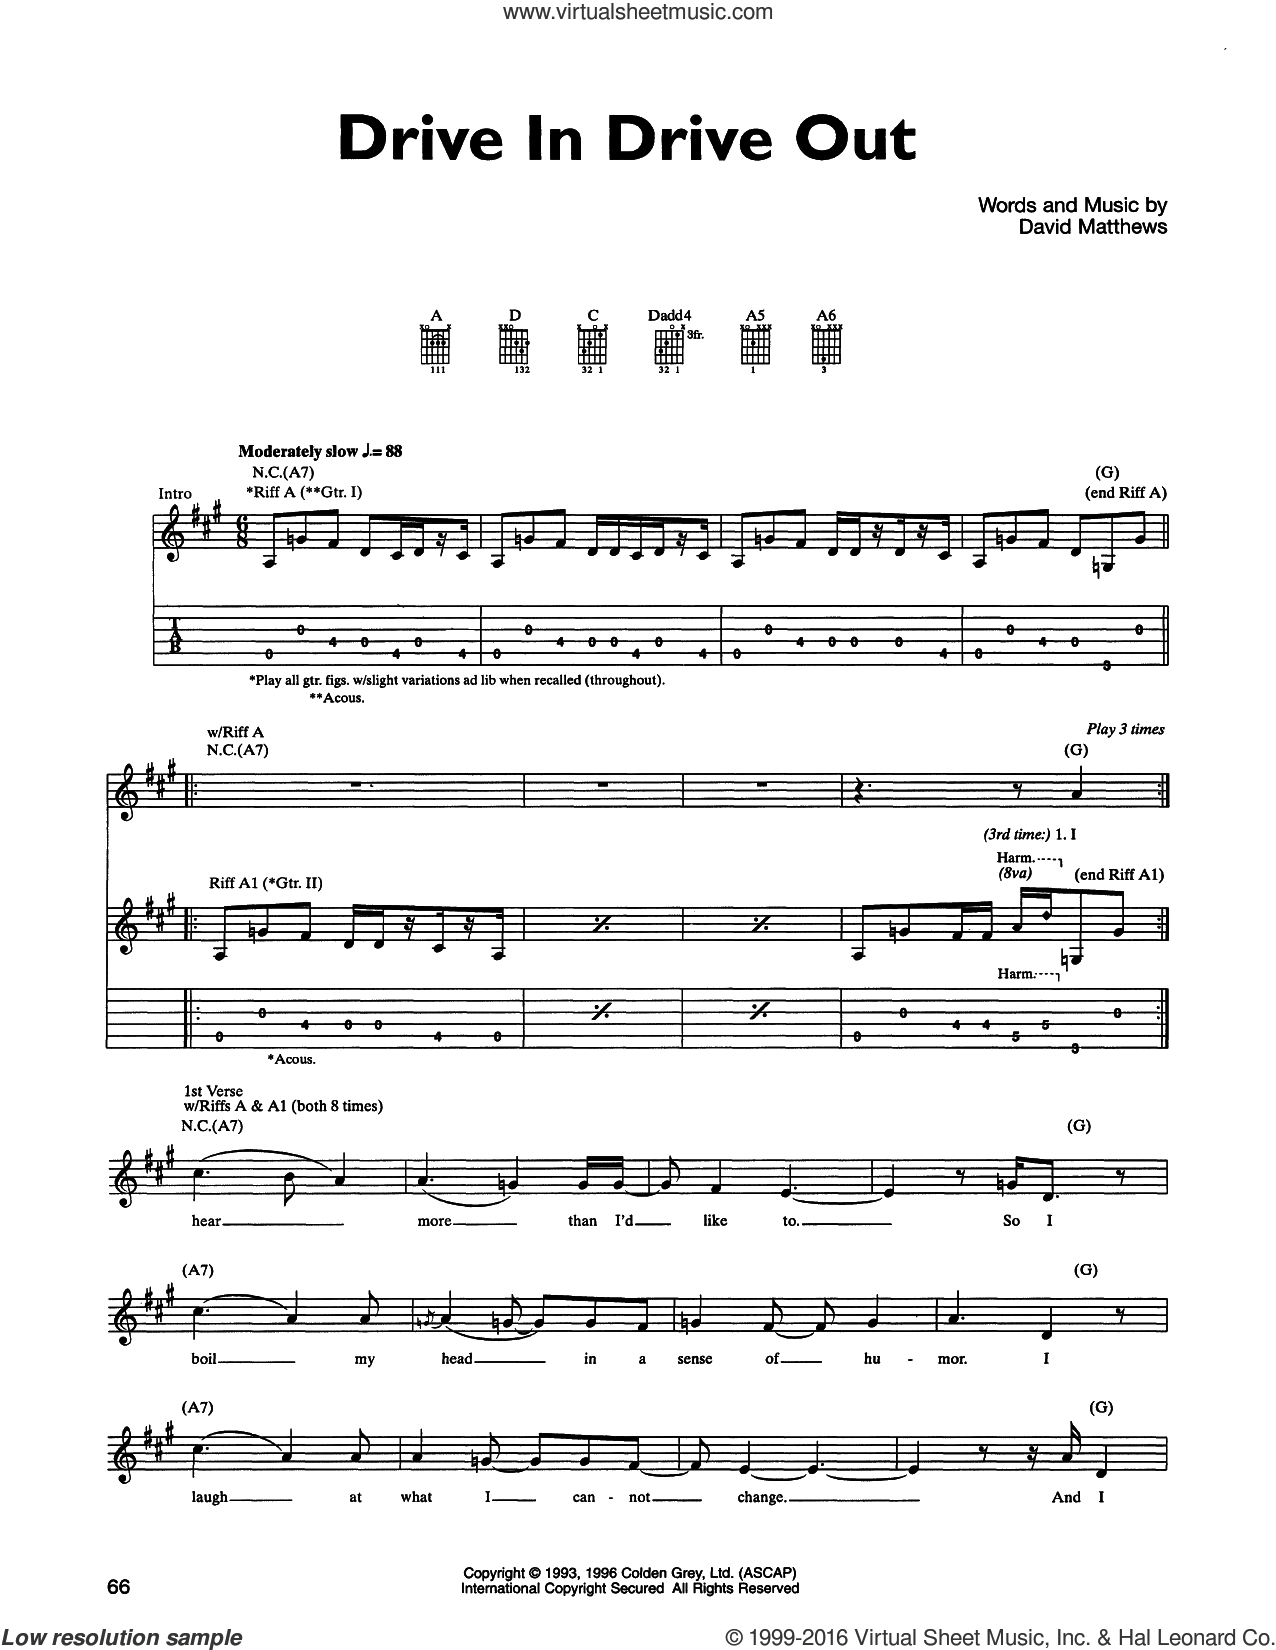 Drive In Drive Out sheet music for guitar (tablature) by Dave Matthews Band. Score Image Preview.